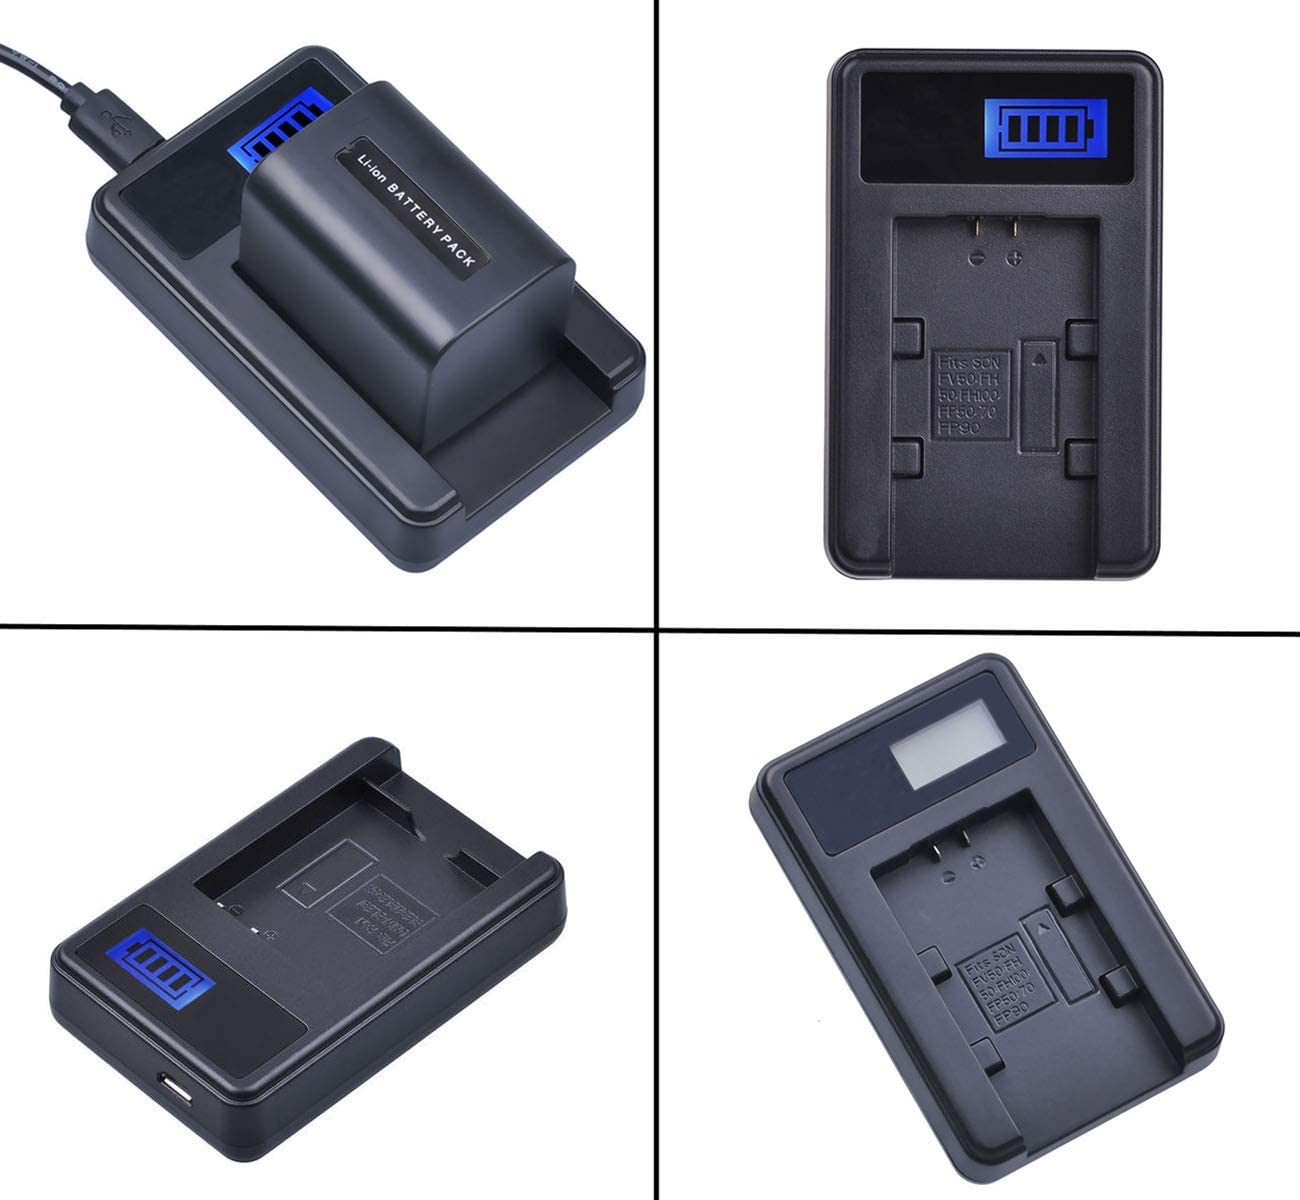 Battery Pack for Sony DCR-SR36E DCR-SR37E DCR-SR38E Handycam Camcorder